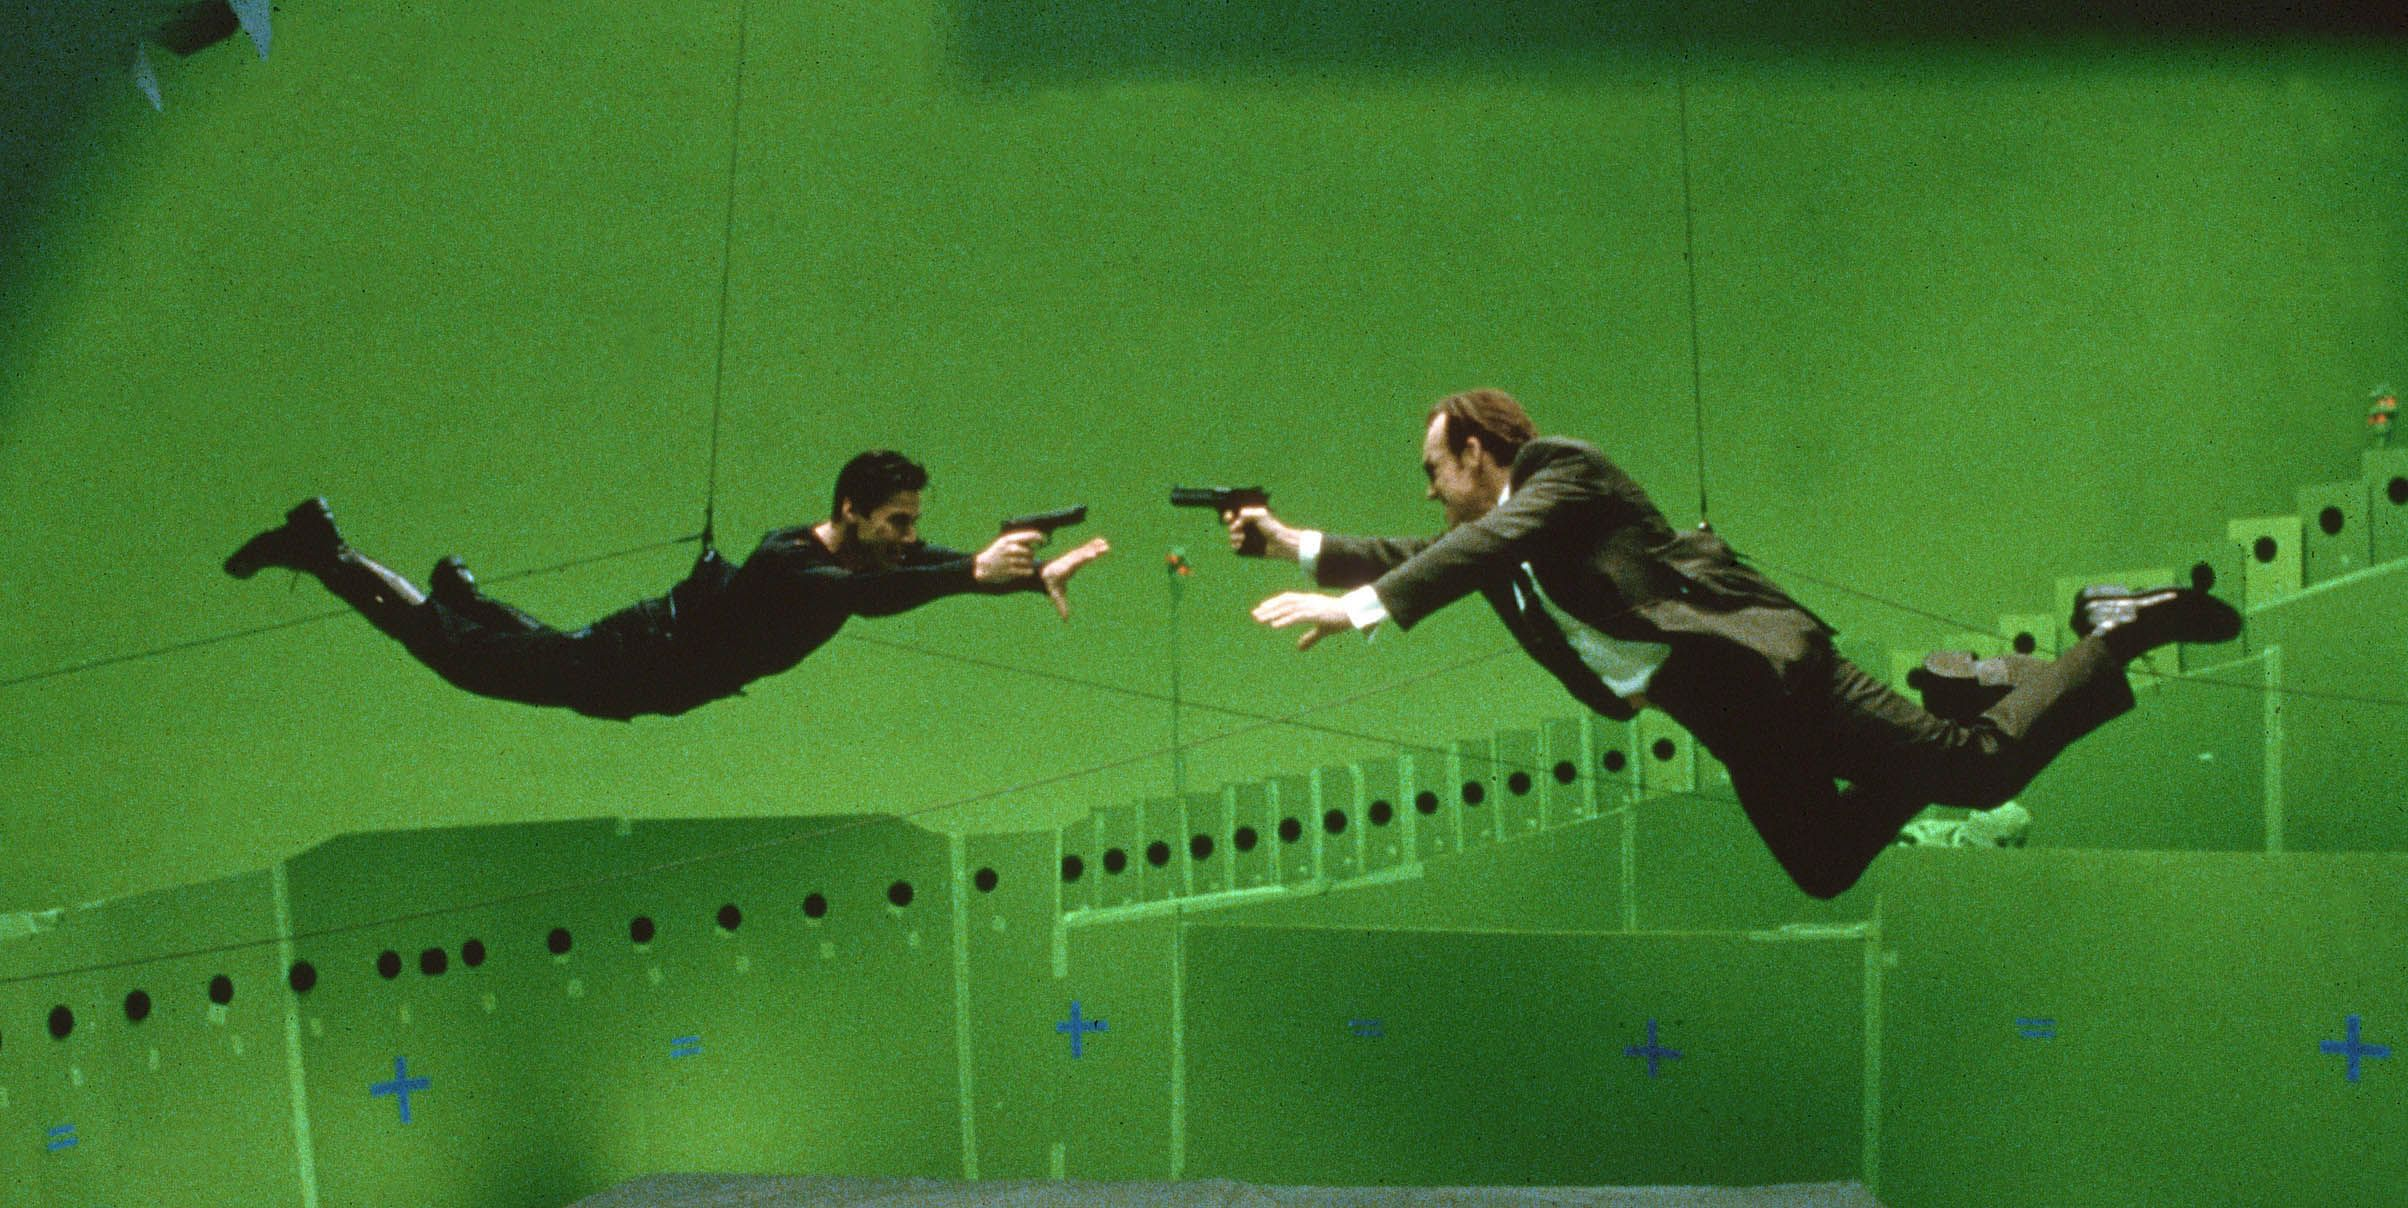 The sci-fi epic from sibling directors The Wachowskis changed movies forever.